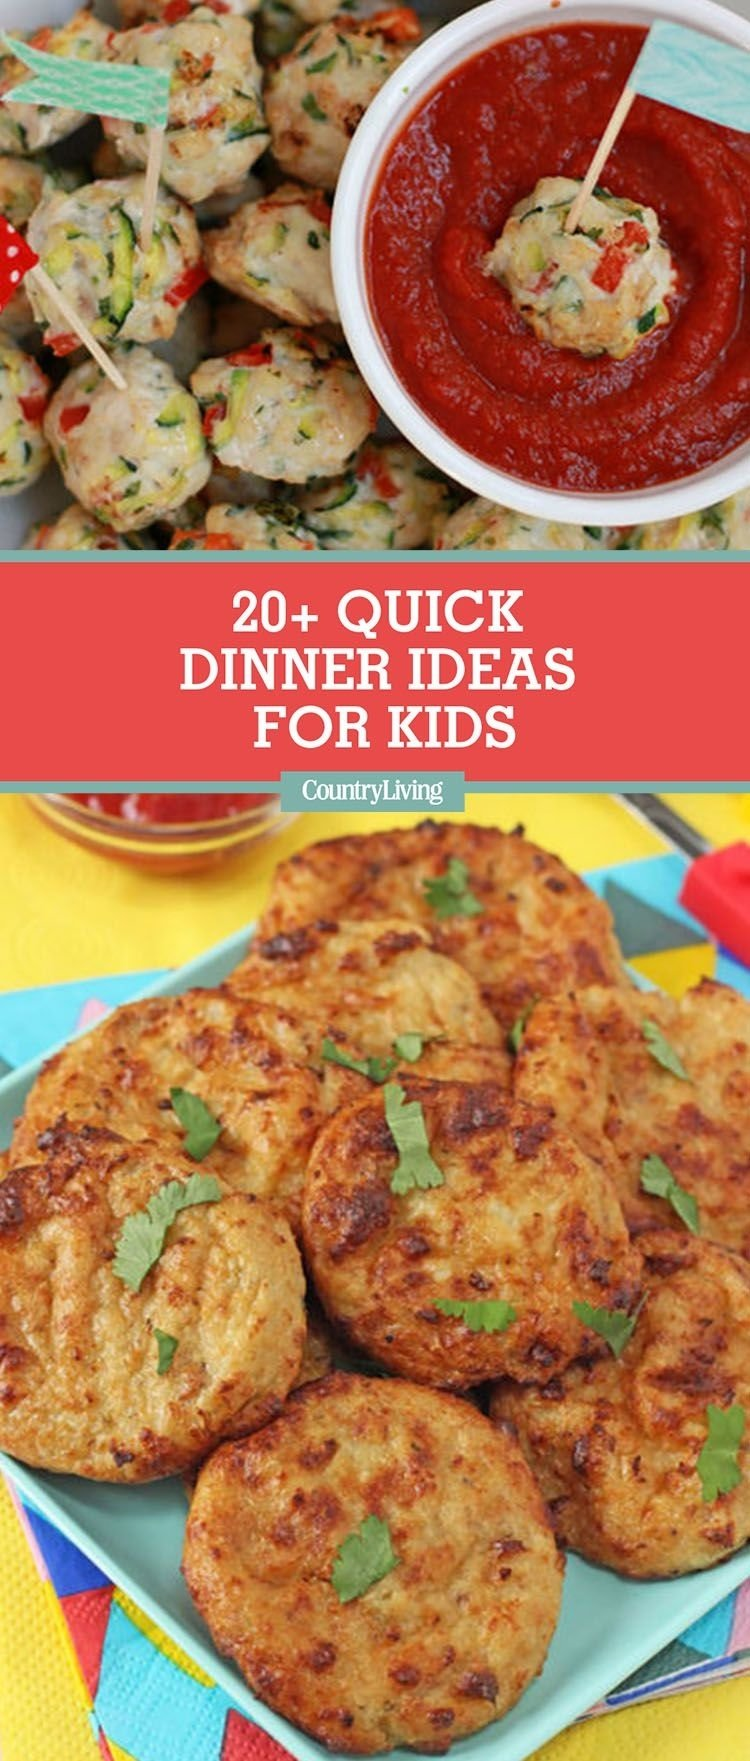 10 Nice Quick And Easy Dinner Ideas For Kids 20 easy dinner ideas for kids quick kid friendly dinner recipes 2